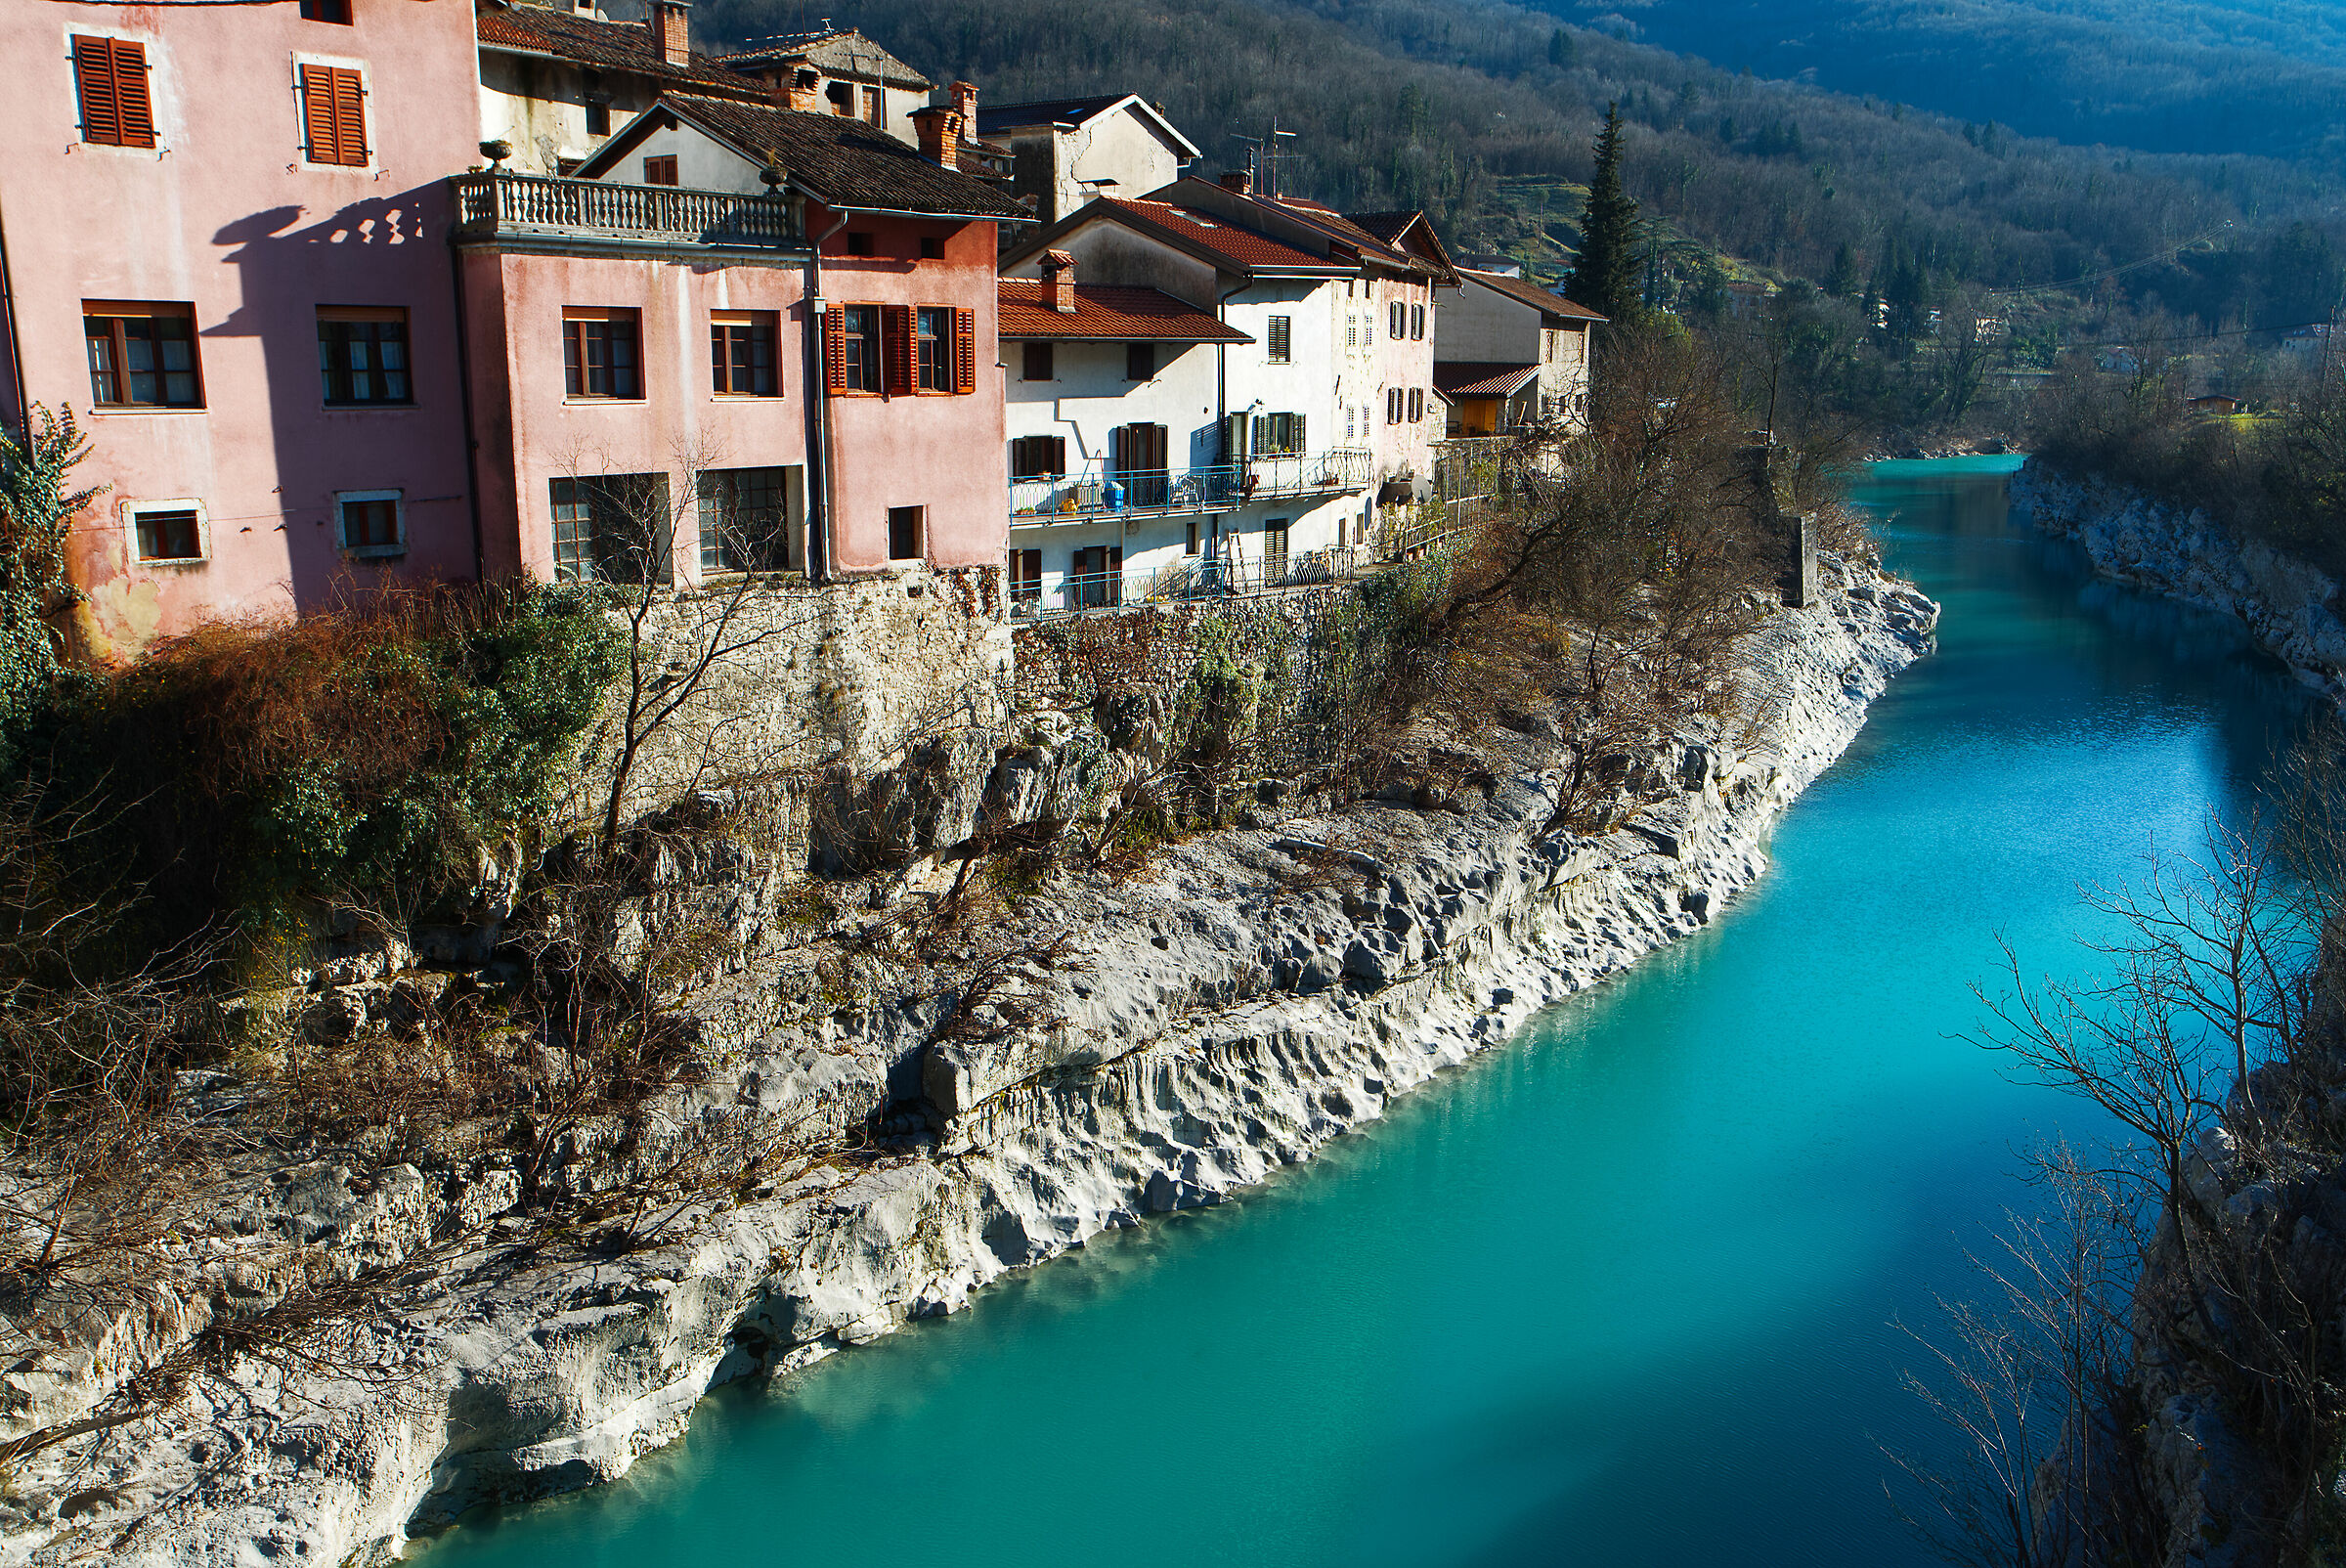 The colours of isonzo in Slovenian territory...